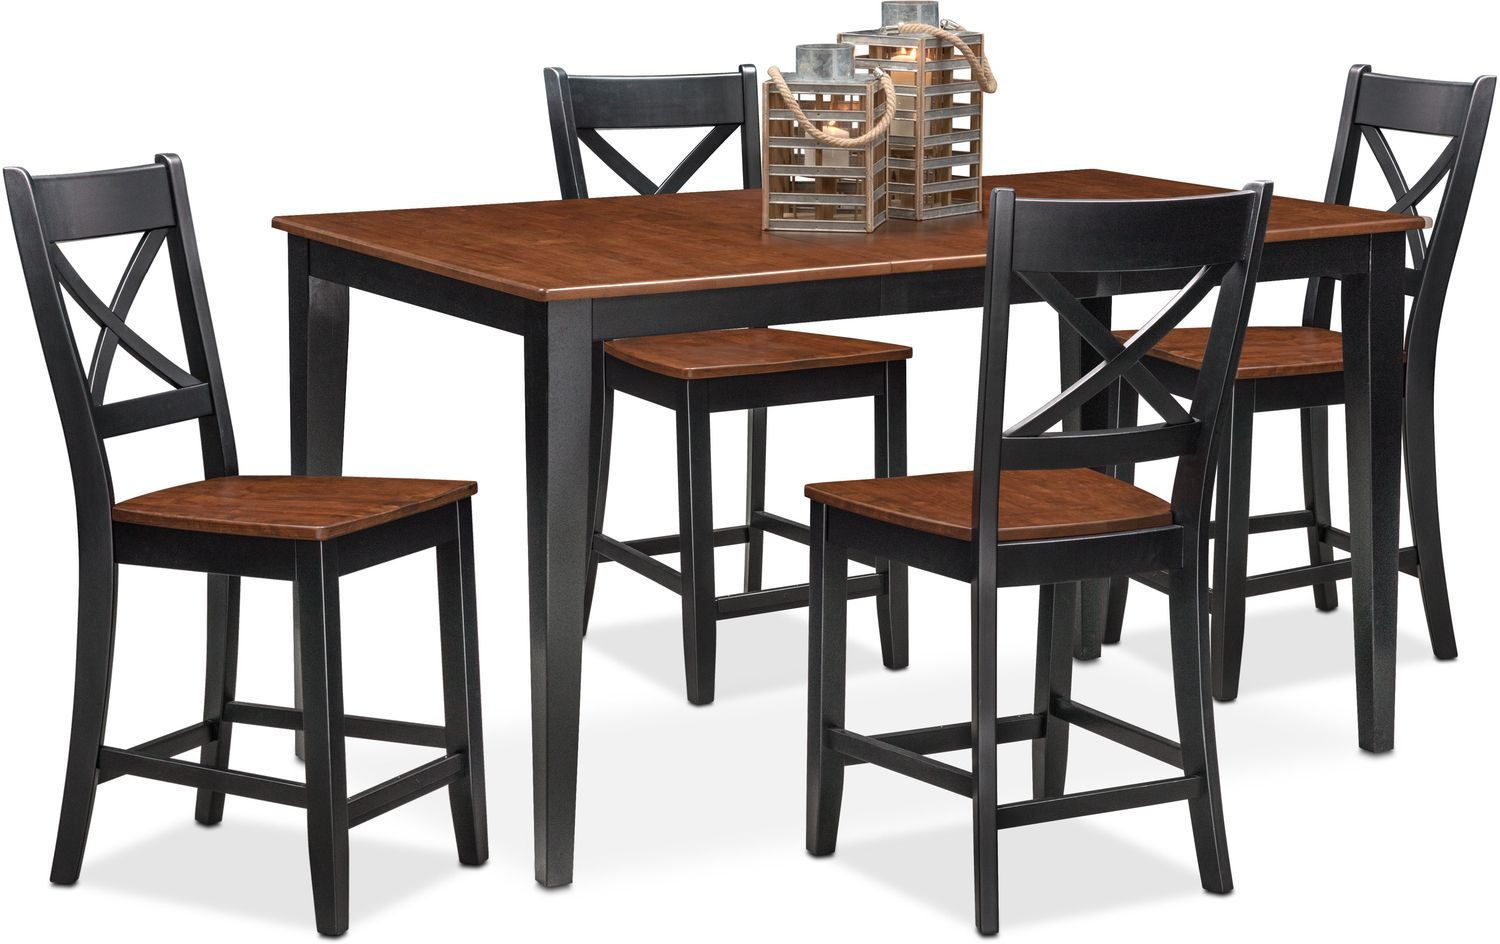 Nantucket CounterHeight Table and 4 Side Chairs Black and